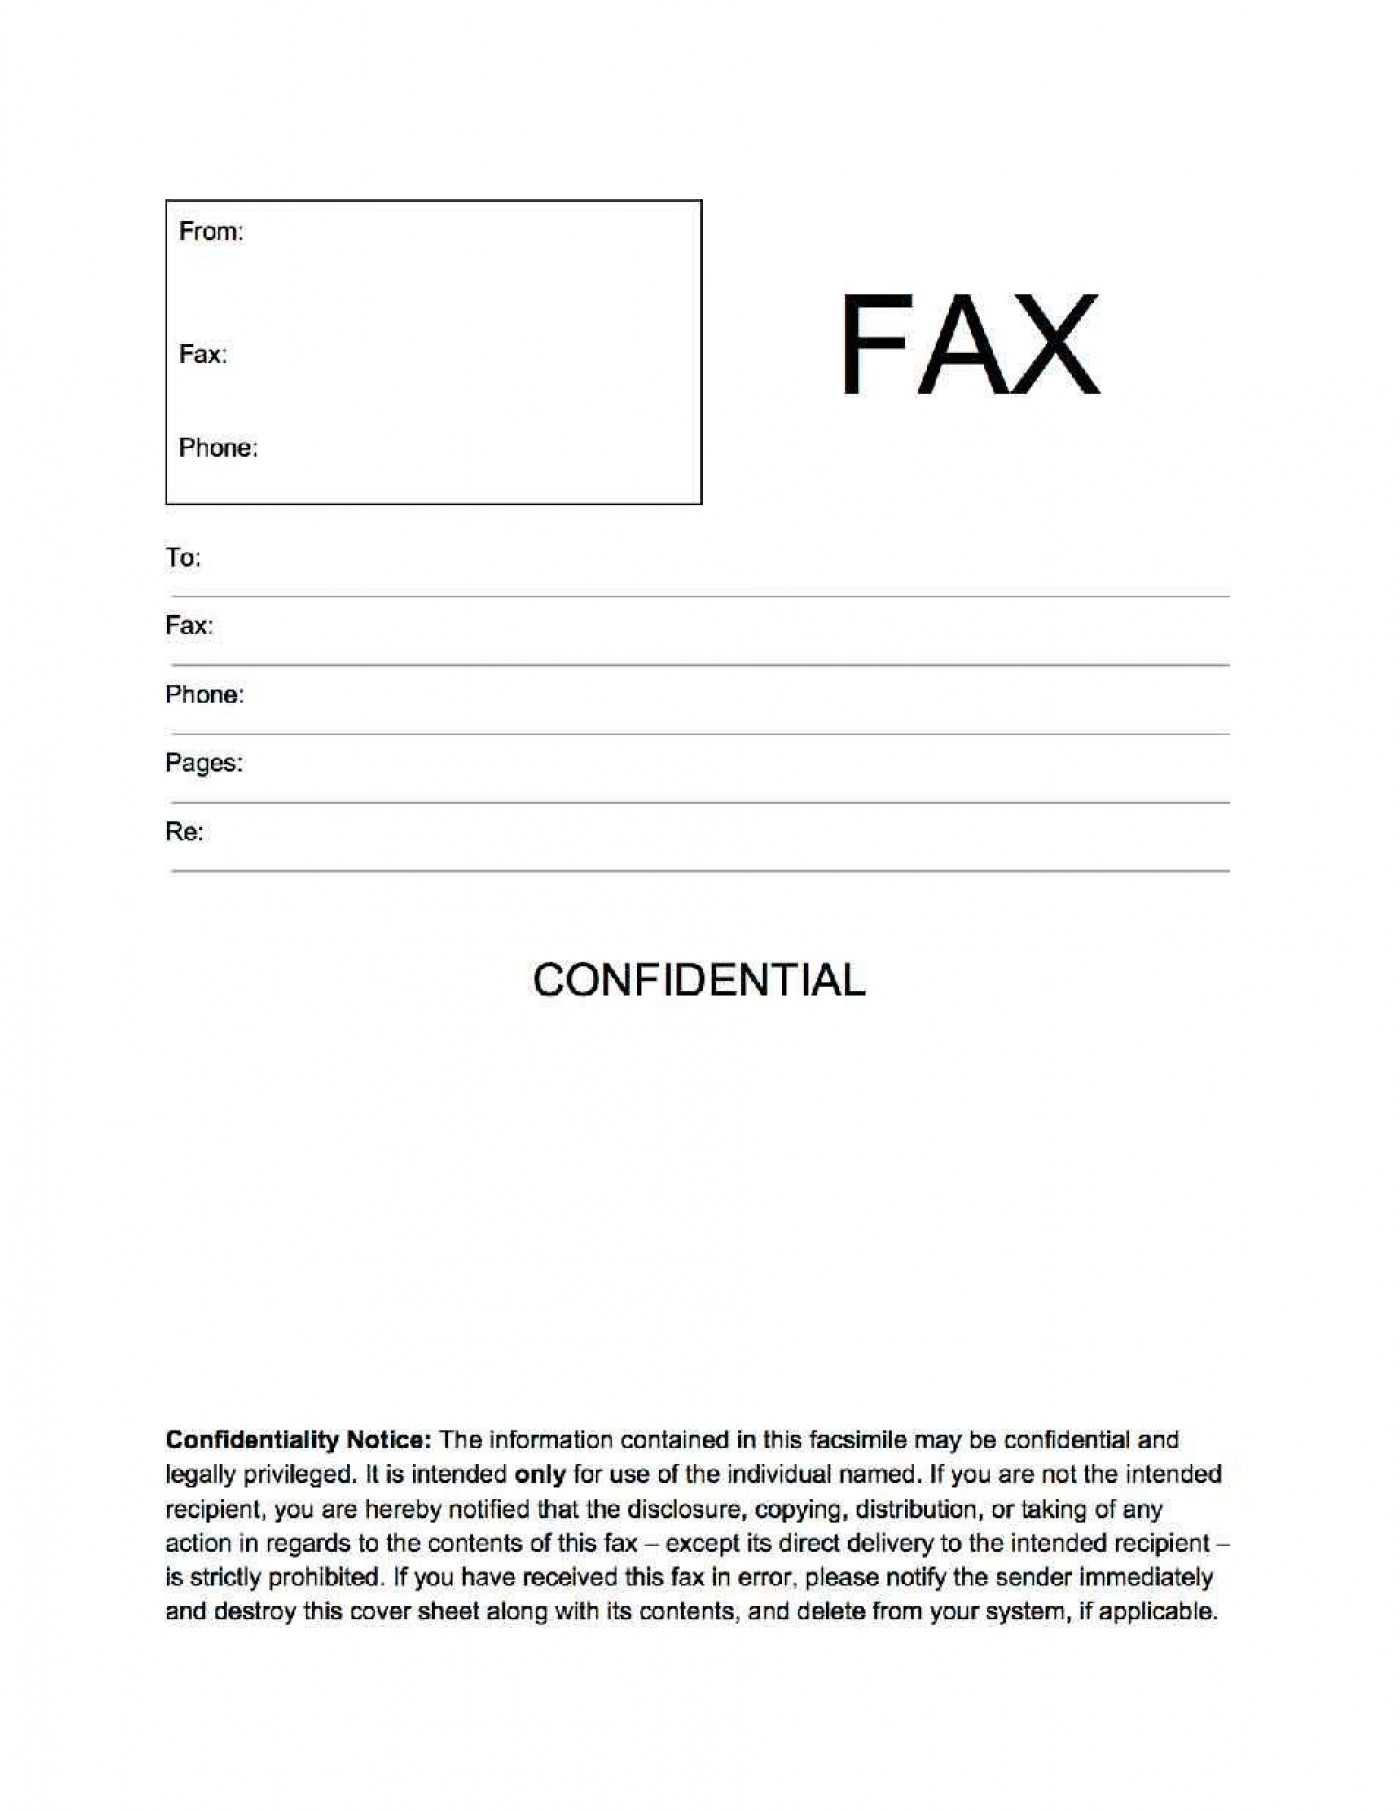 002 Unbelievable General Fax Cover Letter Template Concept  Sheet Word Confidential Example1400